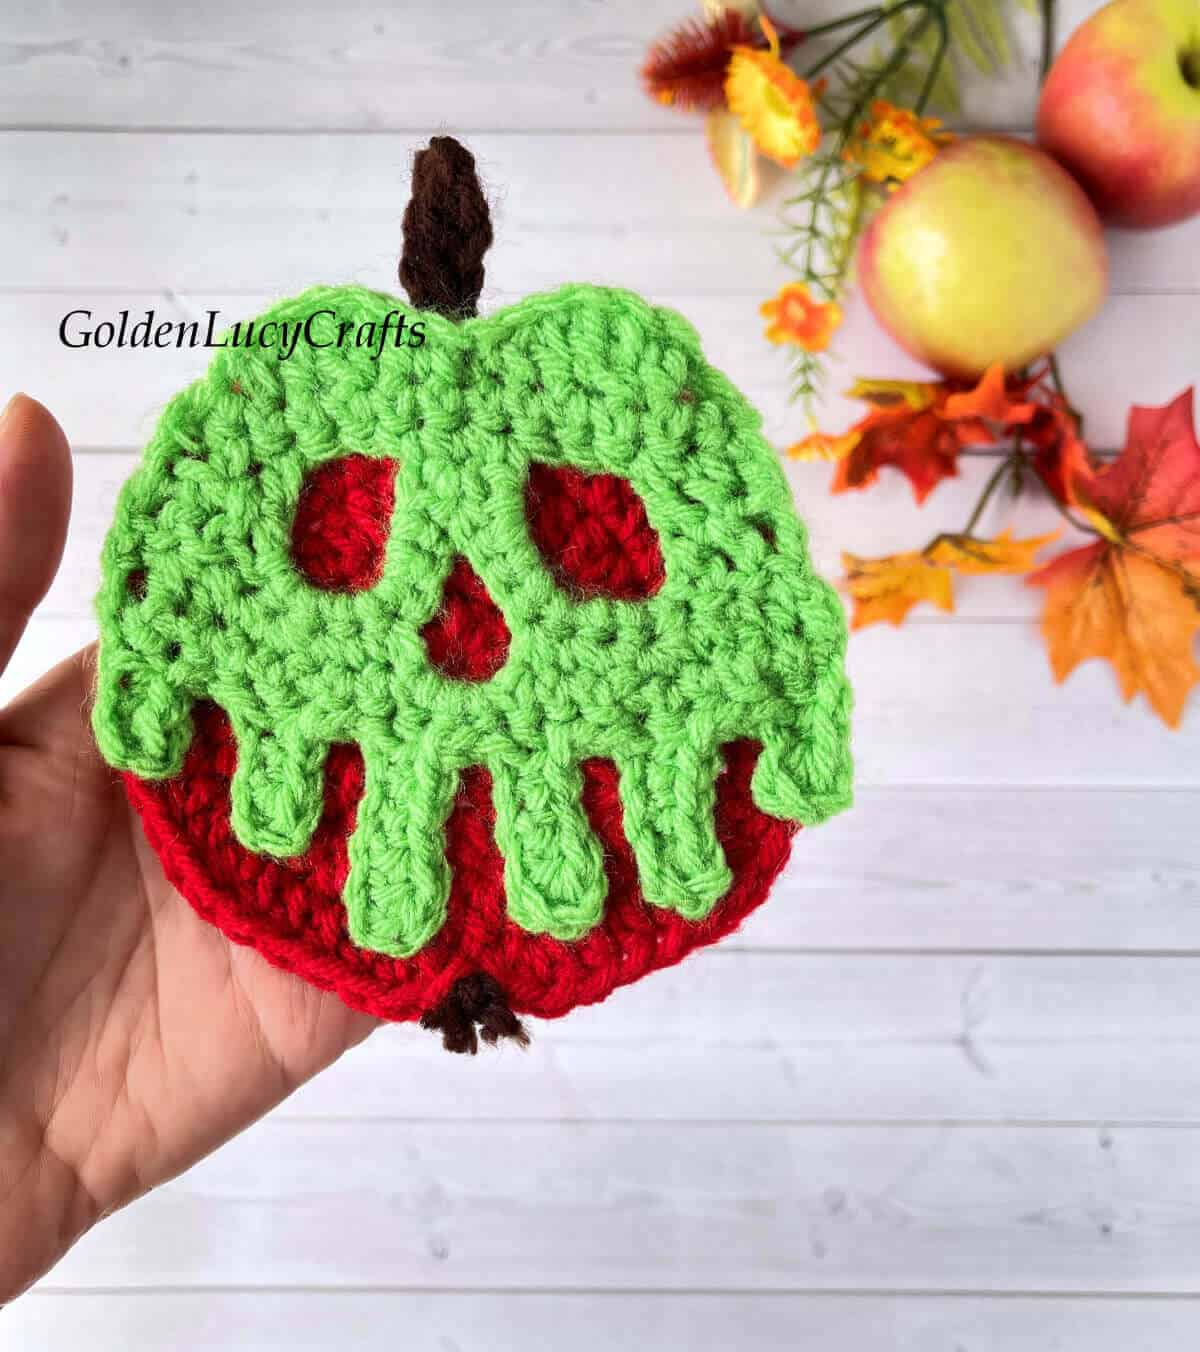 Crocheted poisoned apple ornament in the palm of a hand.